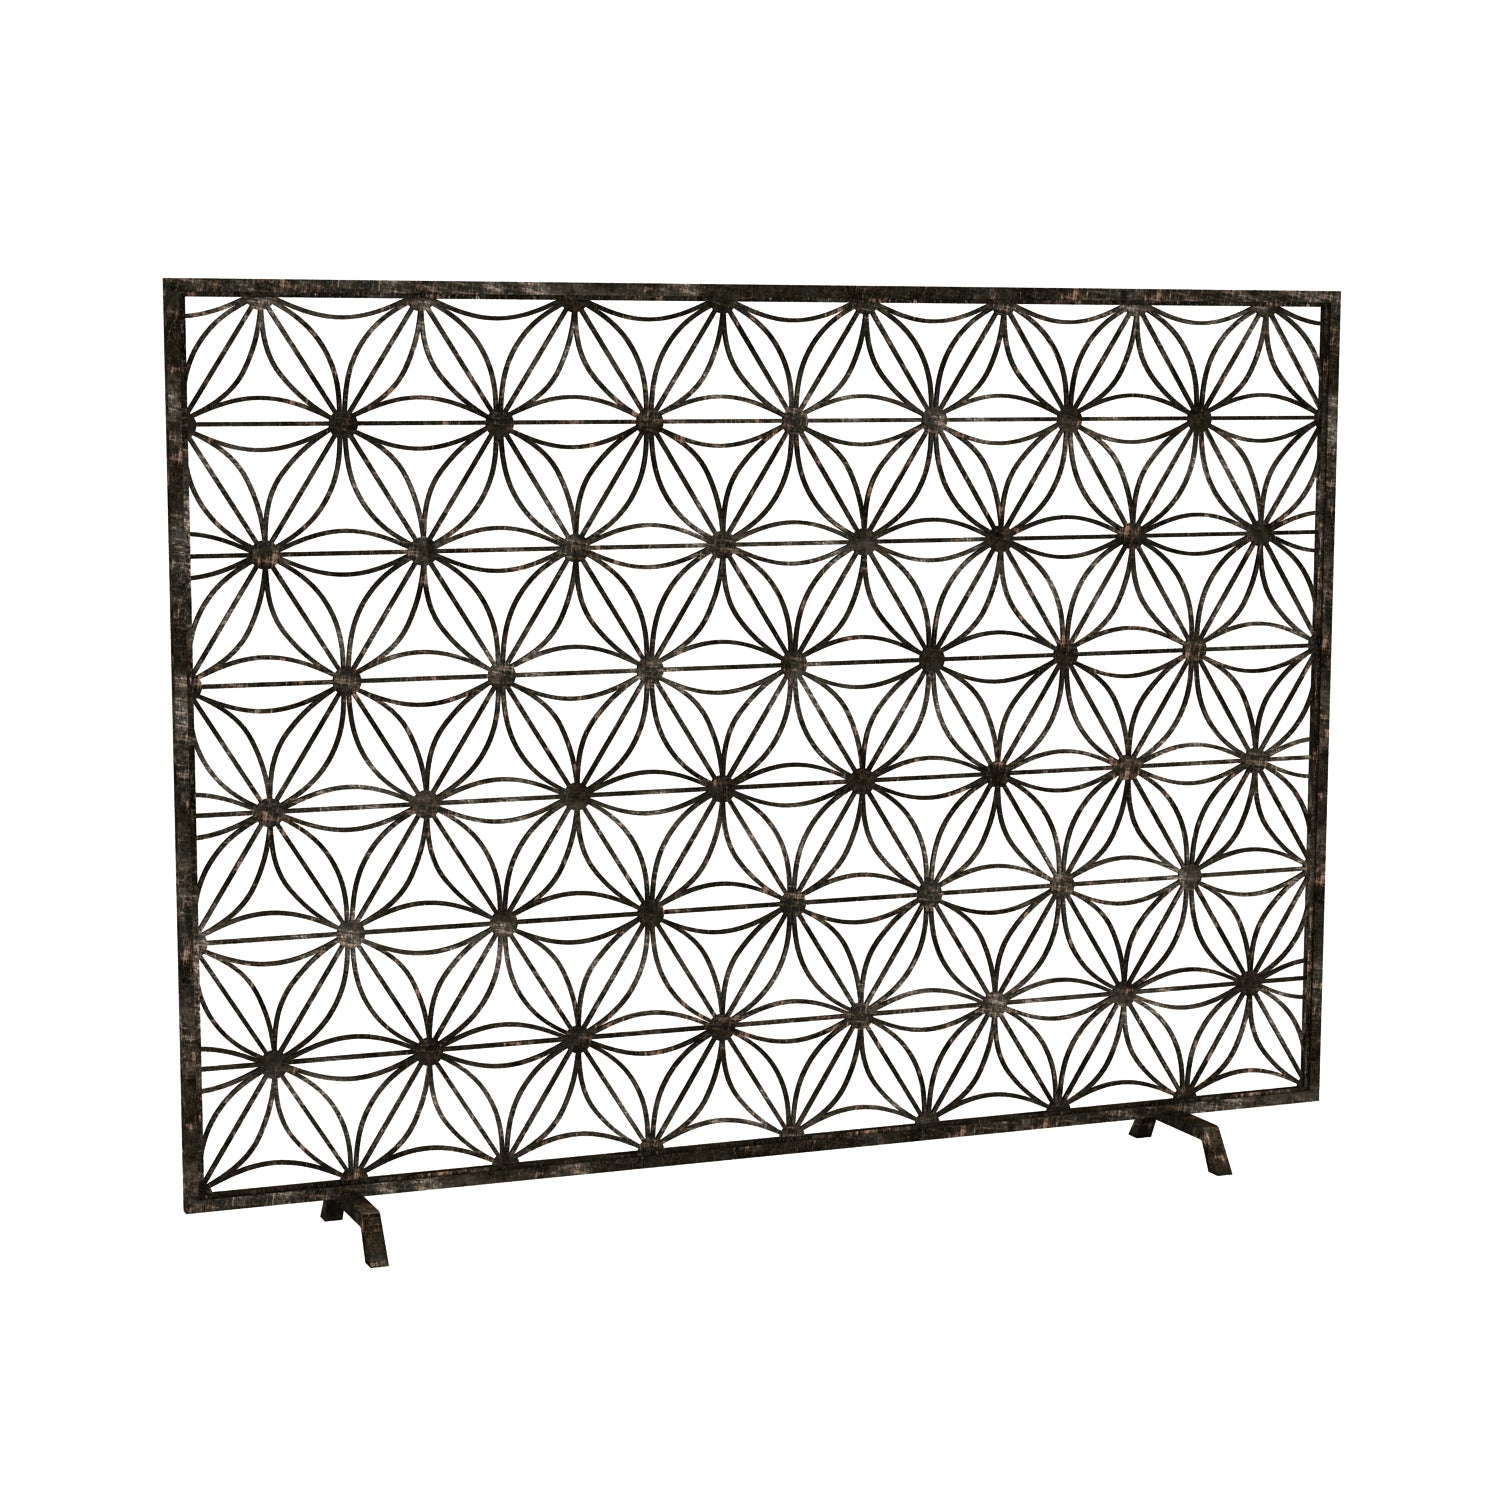 Starry Eyed Fireplace Screen